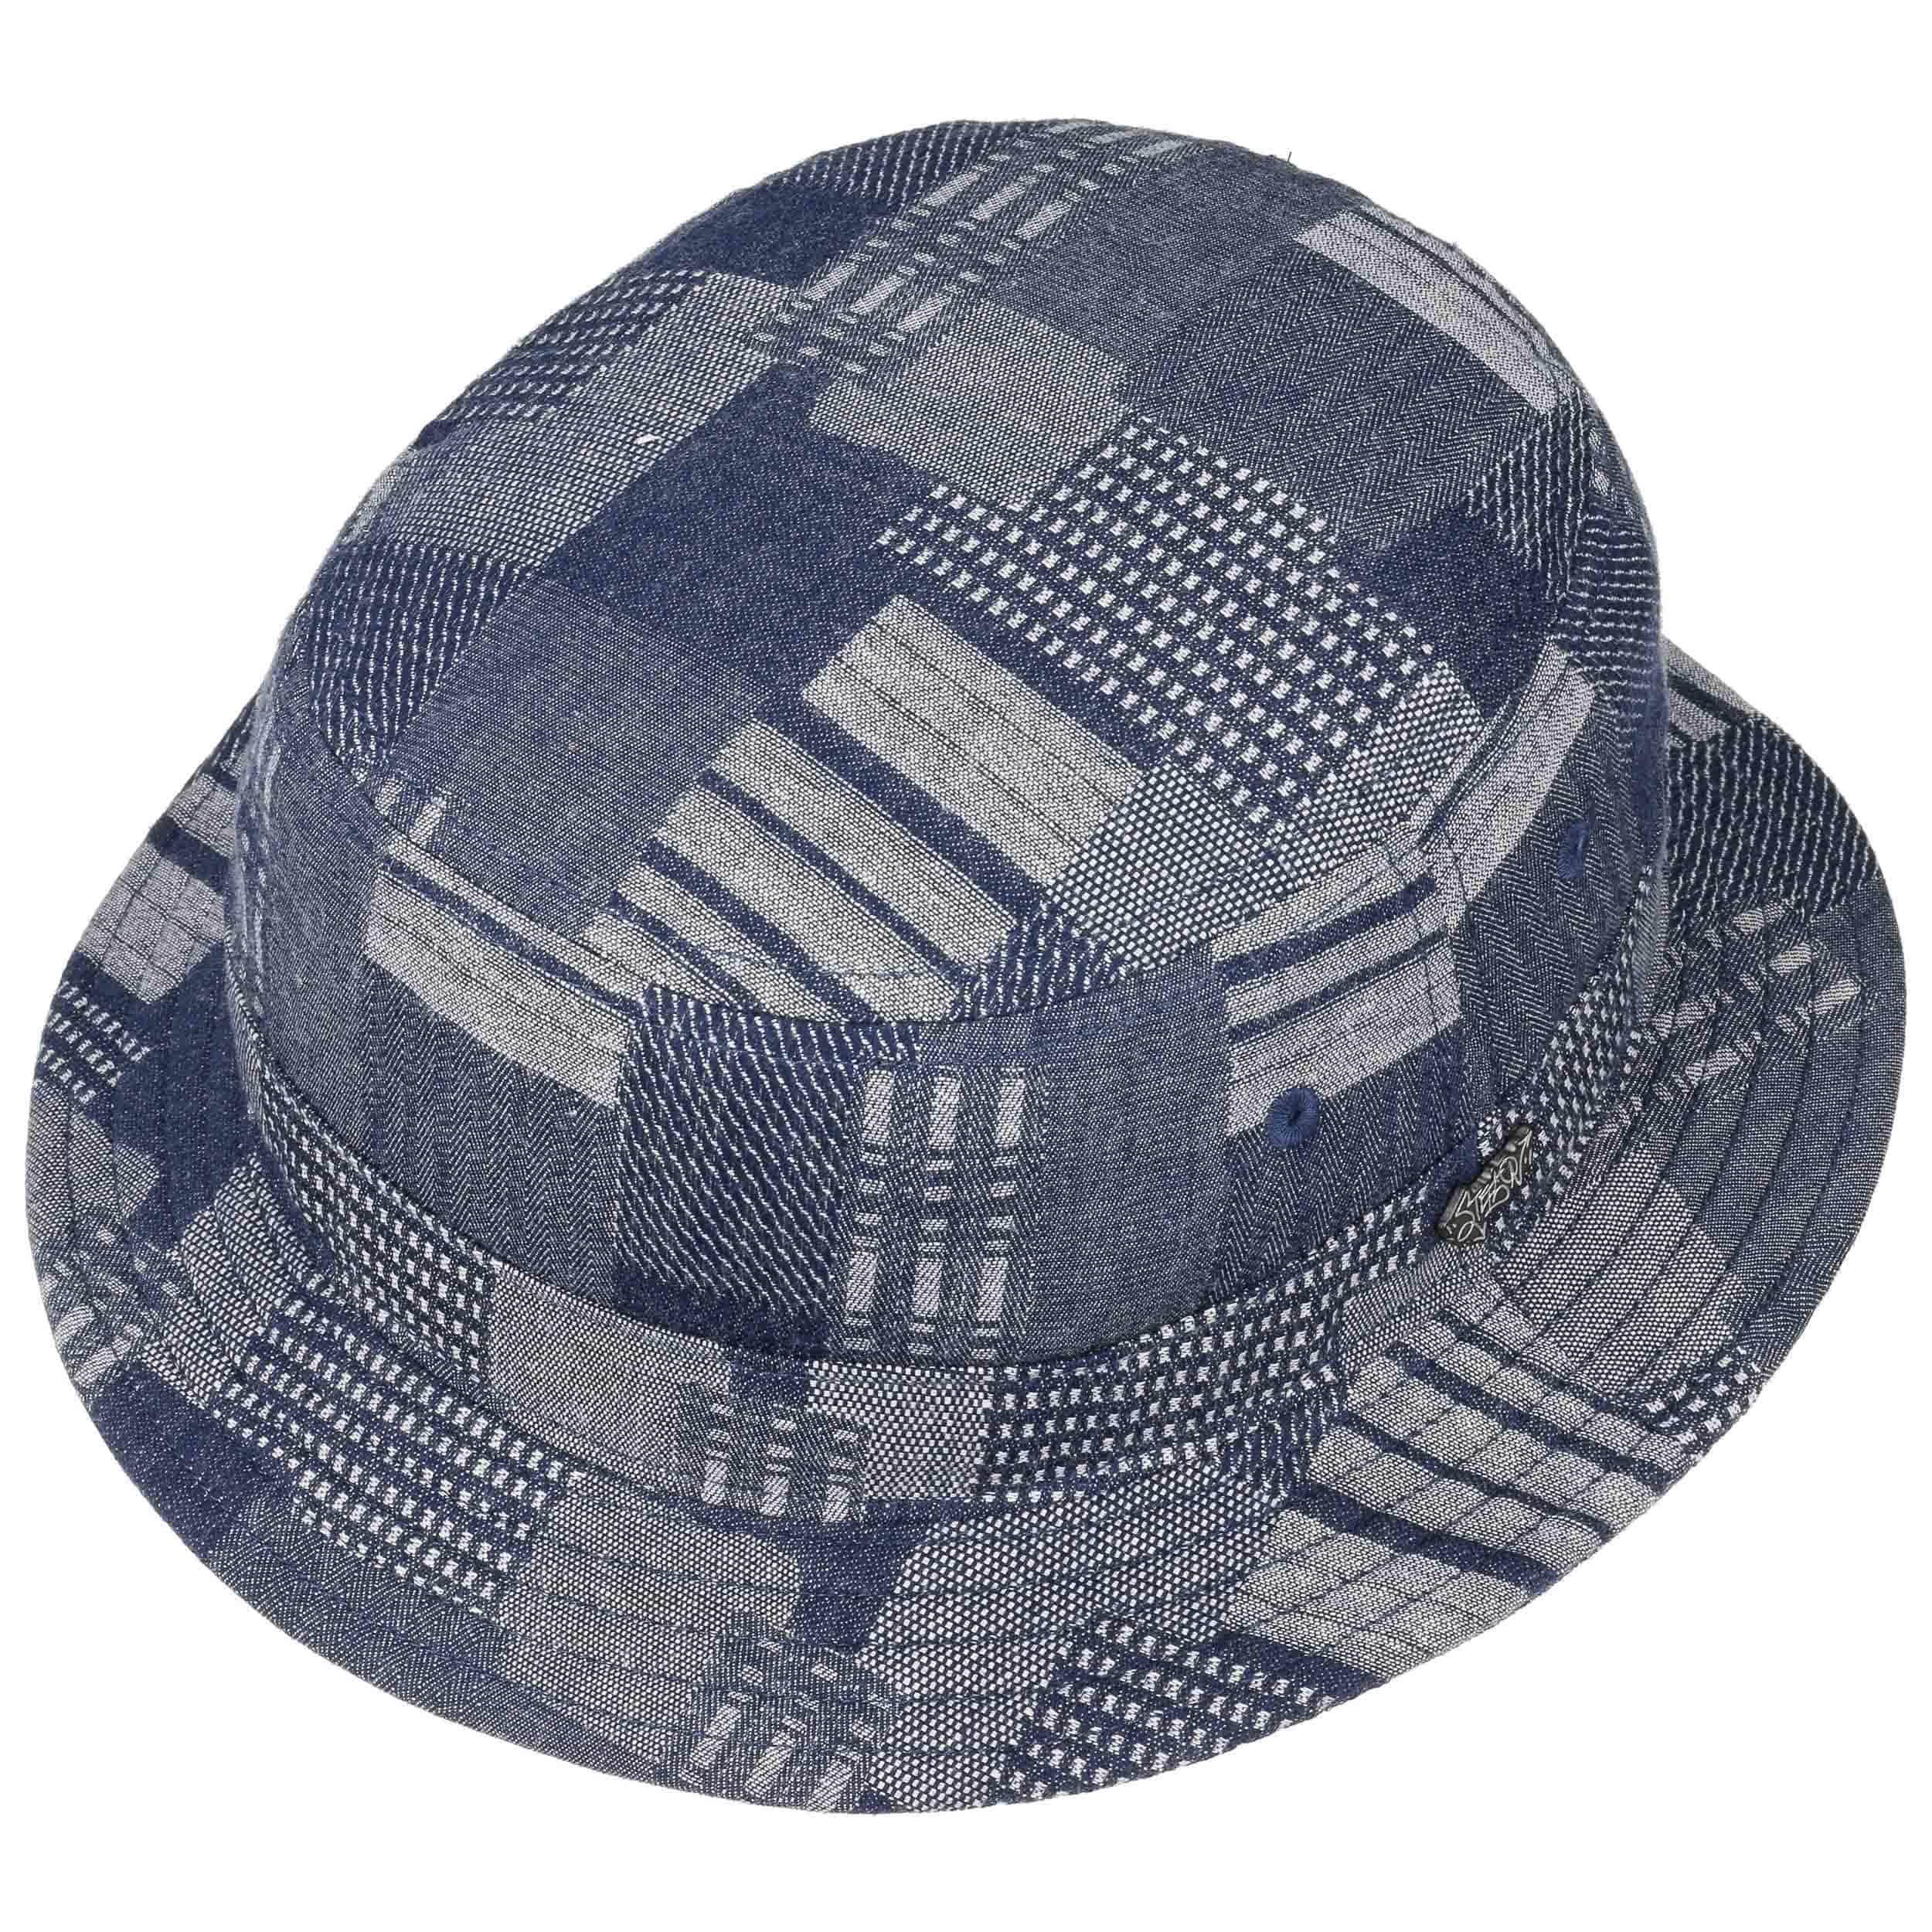 9f74dfc634f Denim Patchwork Bucket Hat by Stetson - denim 1 ...